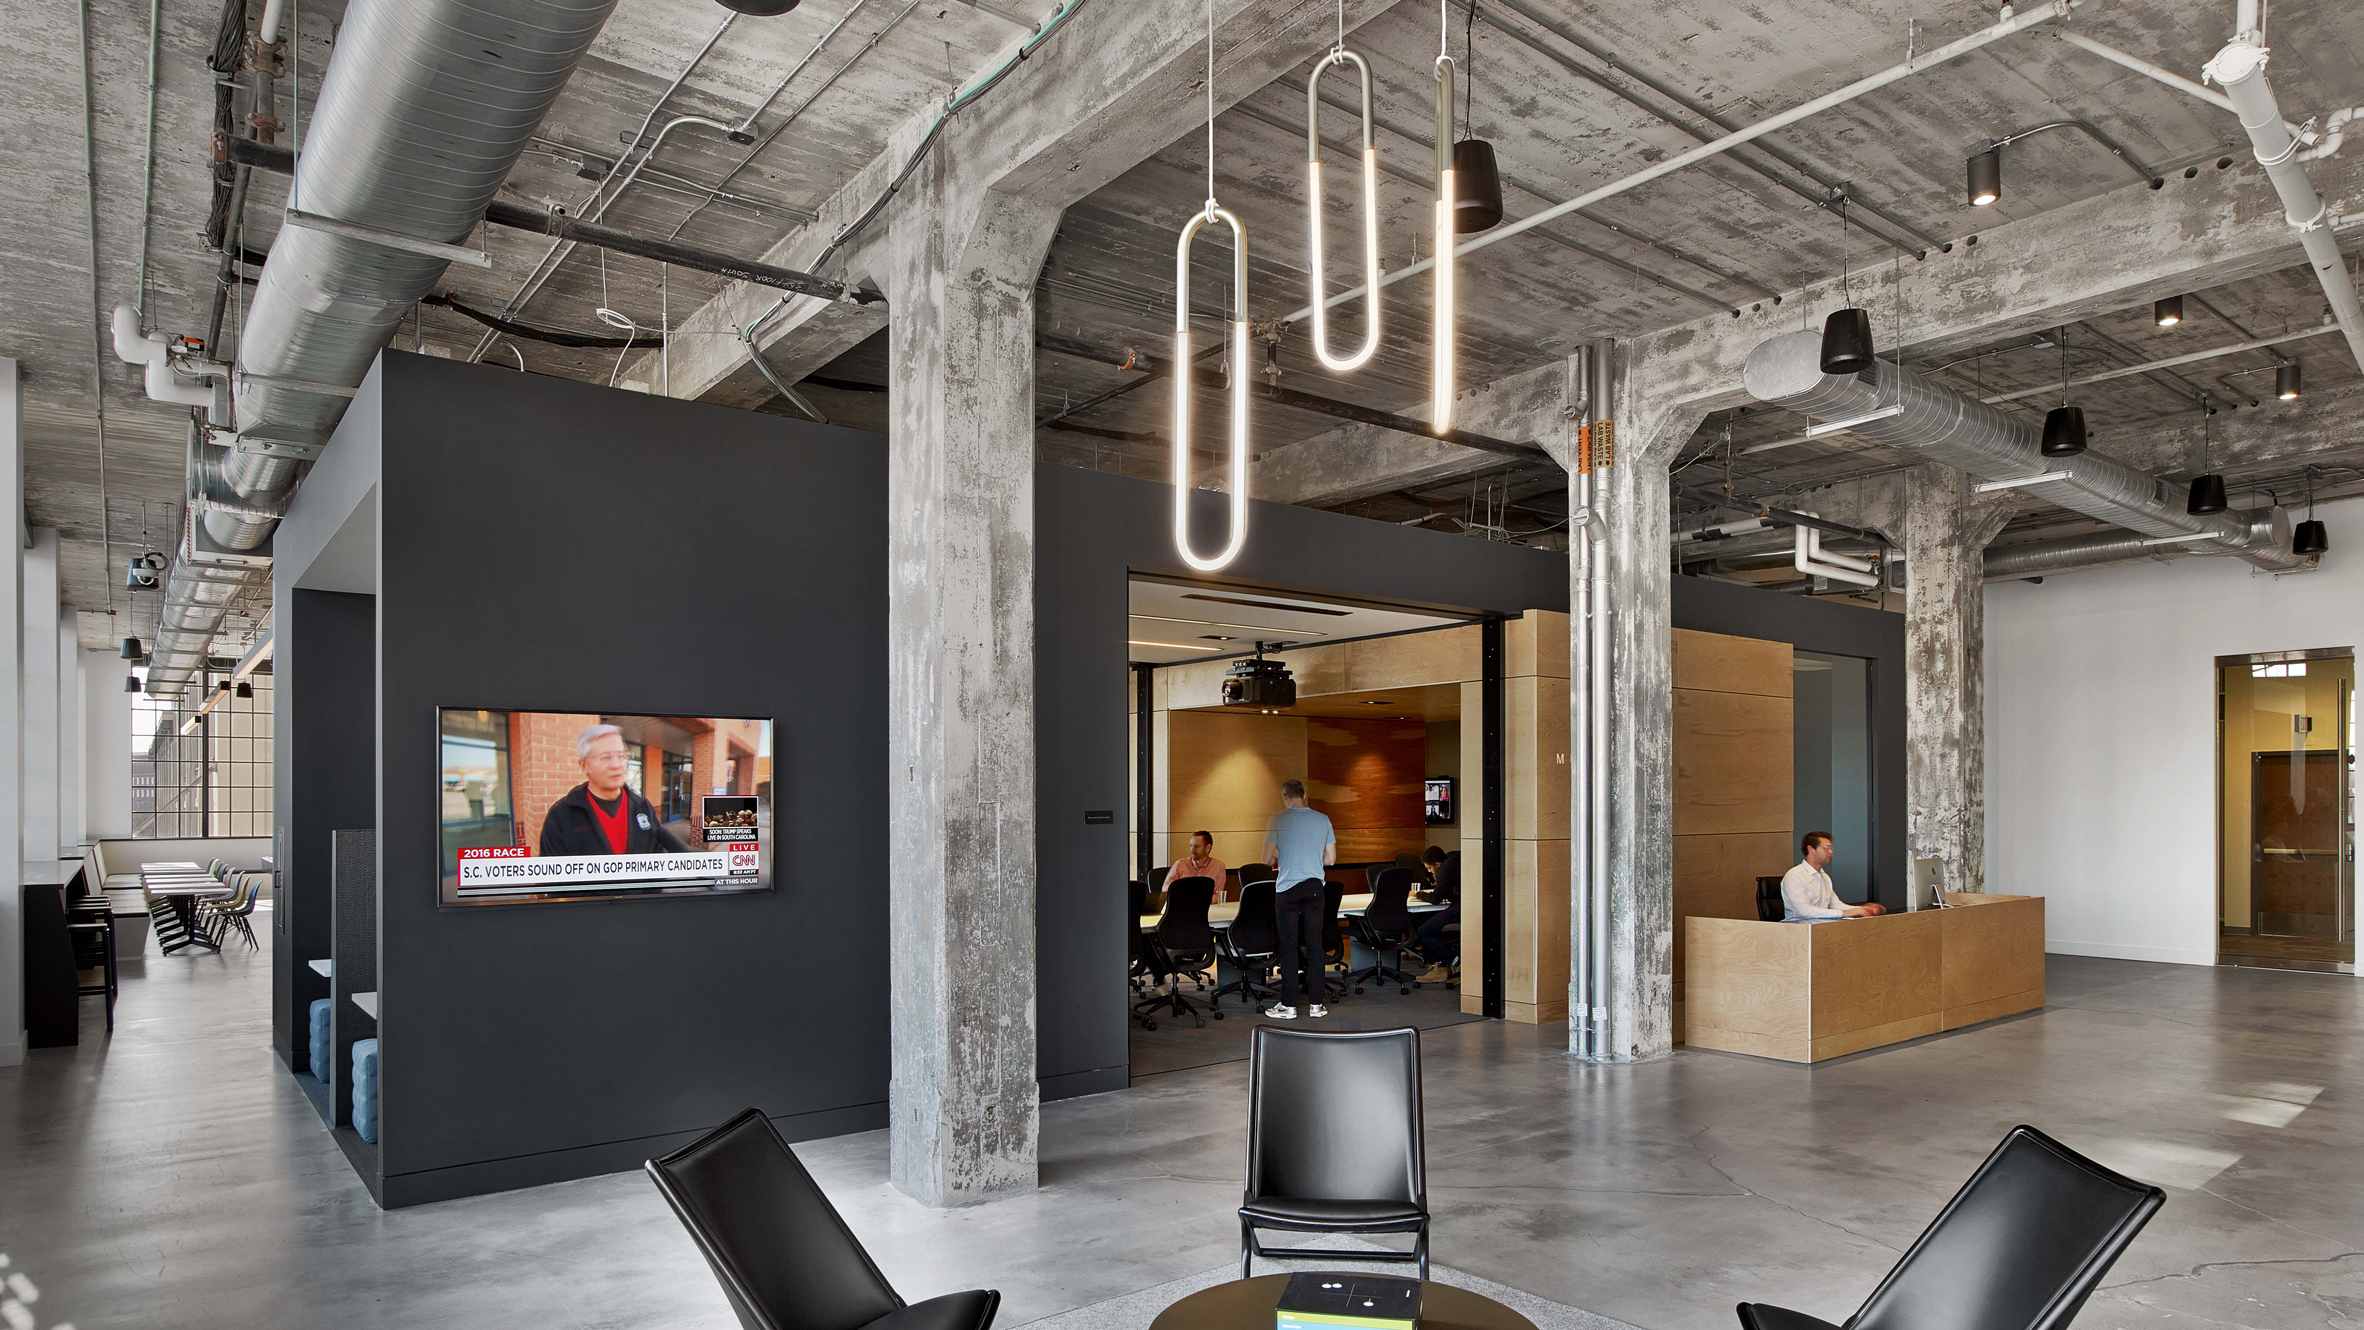 mullen-lowe-offices-tpg-architecture-interiors-north-carolina-usa_dezeen_herob.jpg